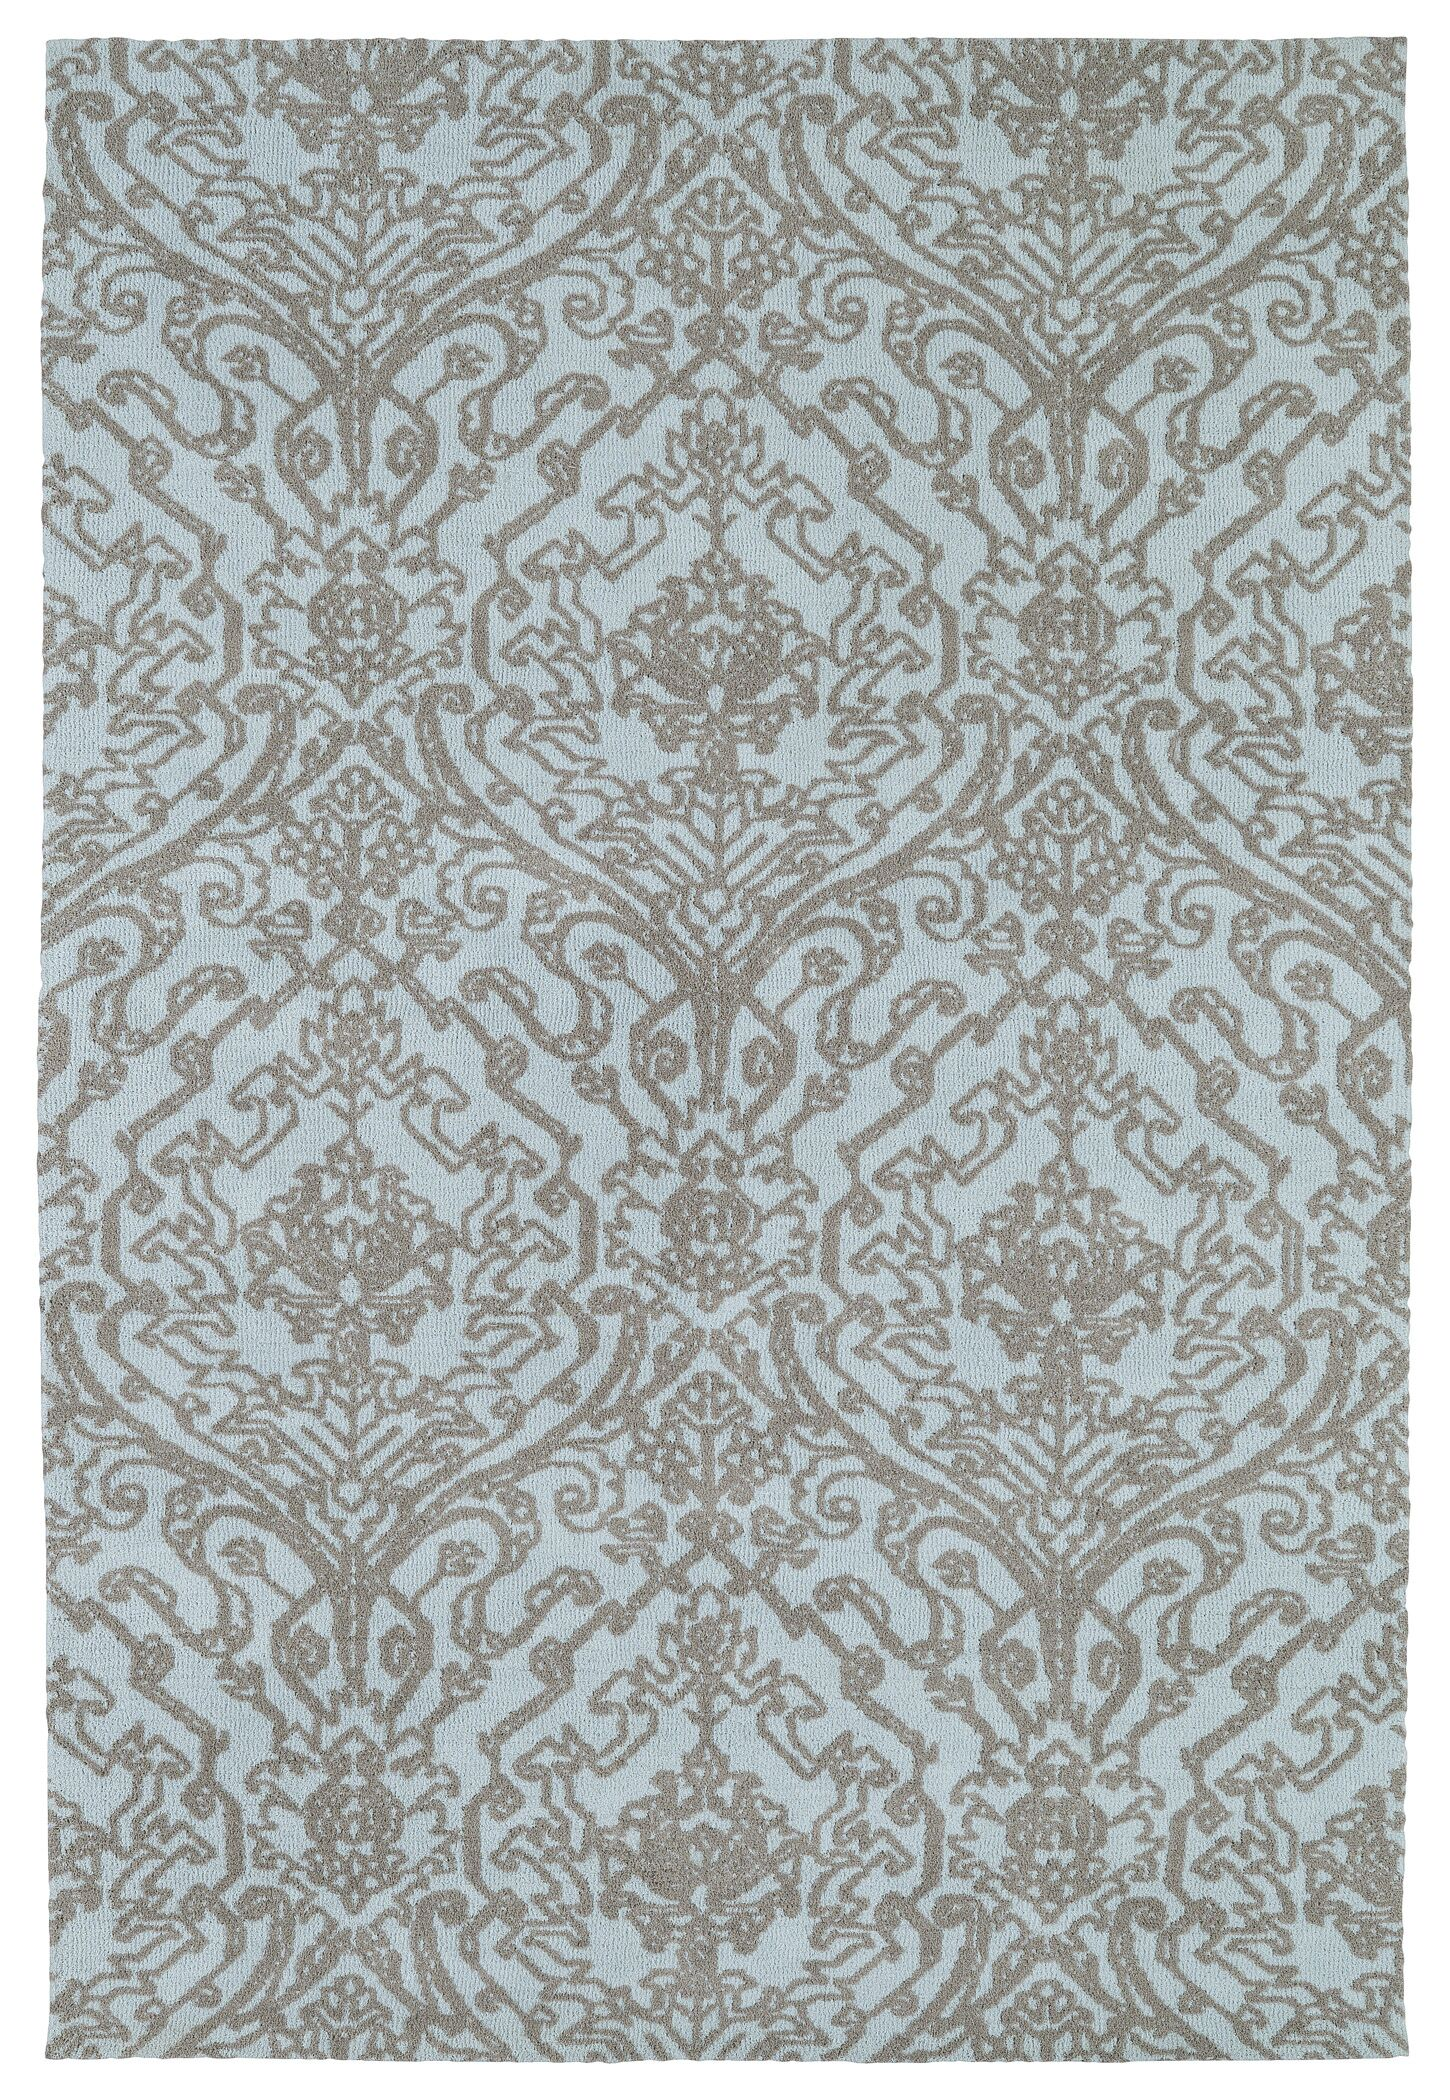 Theroux Blue Area Rug Rug Size: Rectangle 3' x 5'